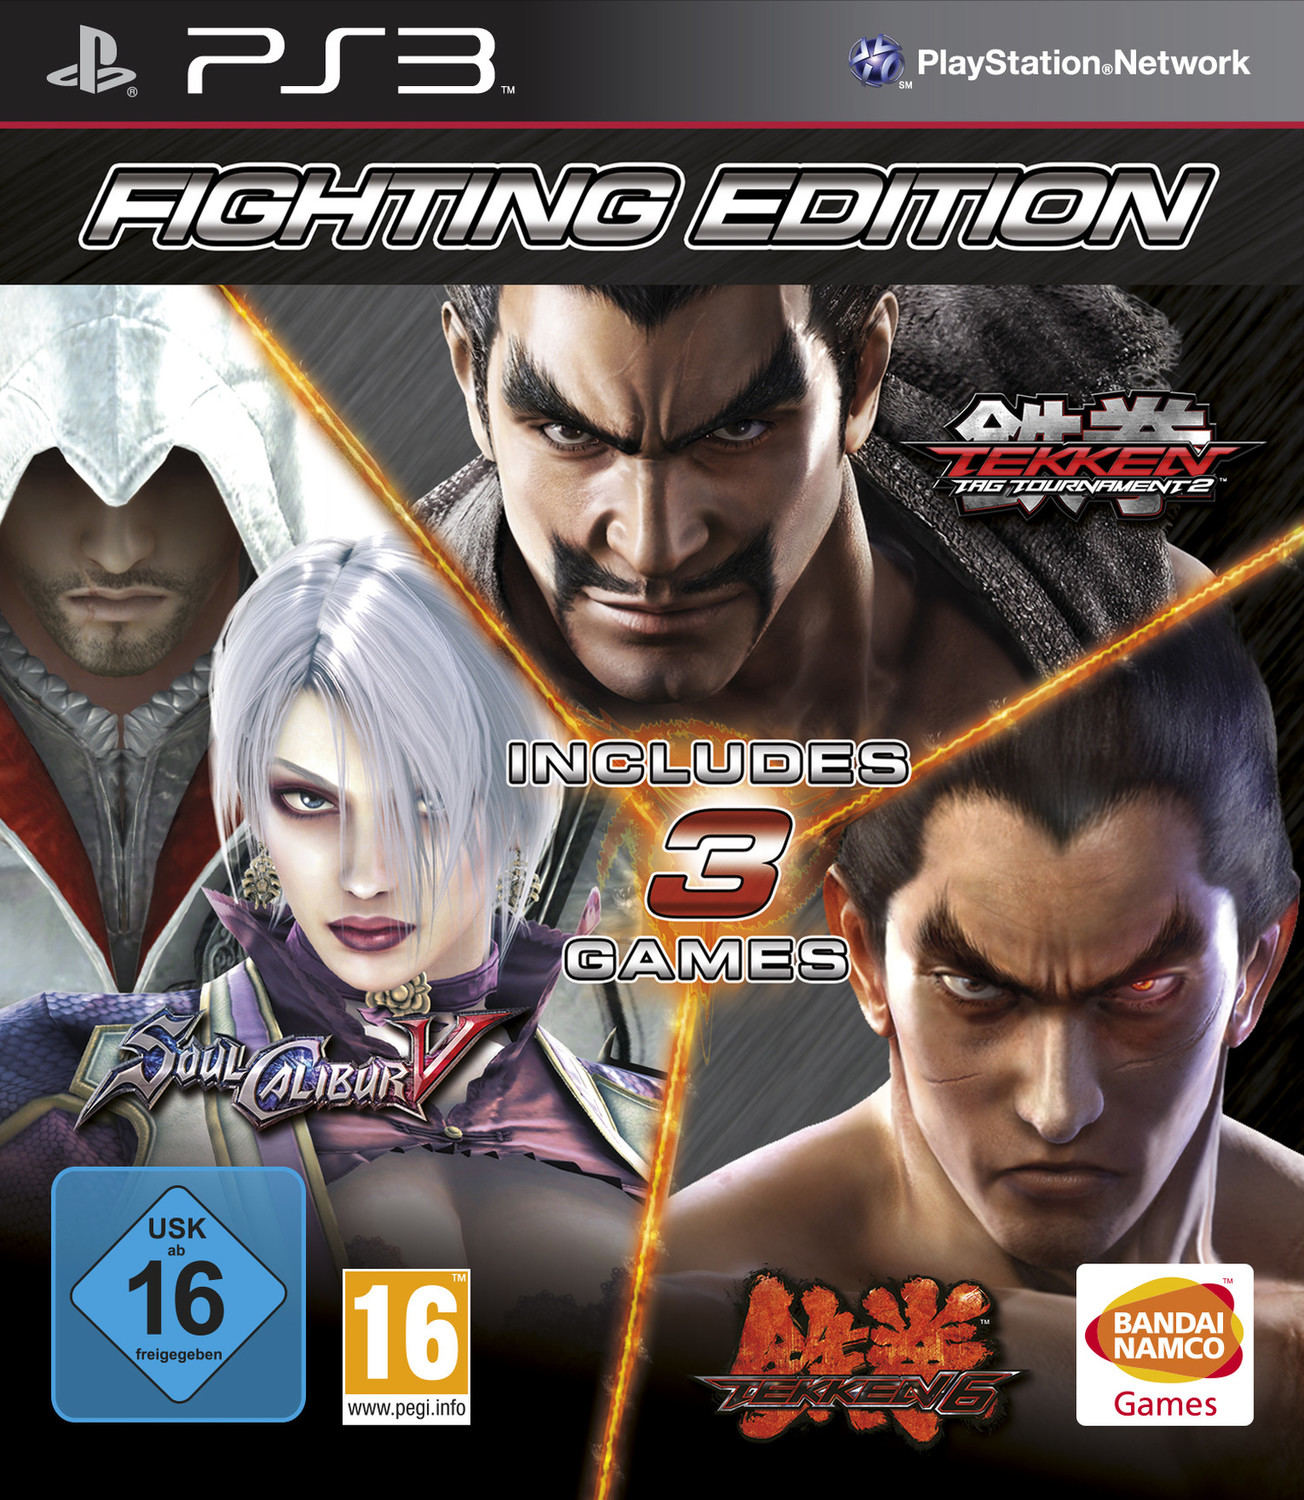 Fighting Edition Tekken 6 Tekken Tag Tournament 2 Soulcalibur